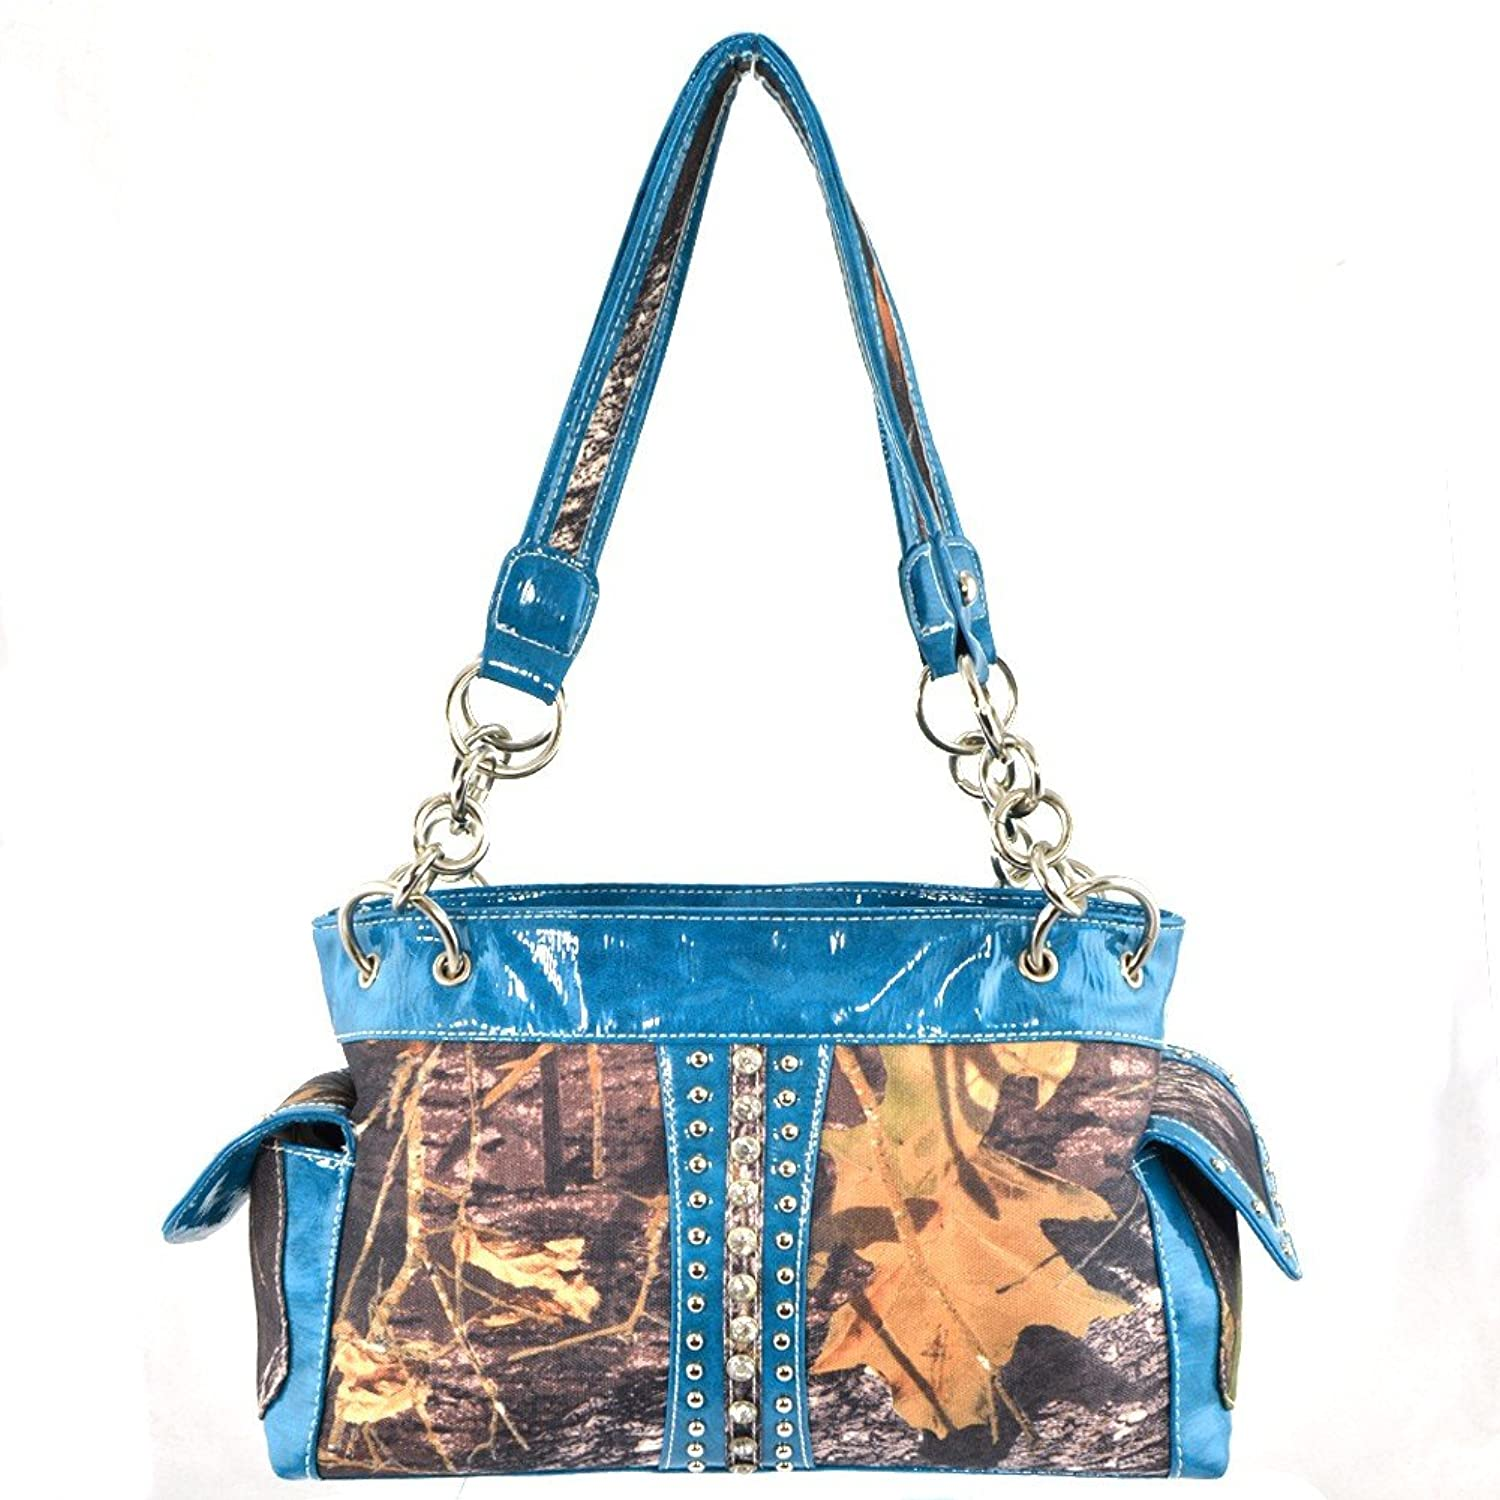 Western Camouflage Rhinestone Studded Shoulder Bag-Blue